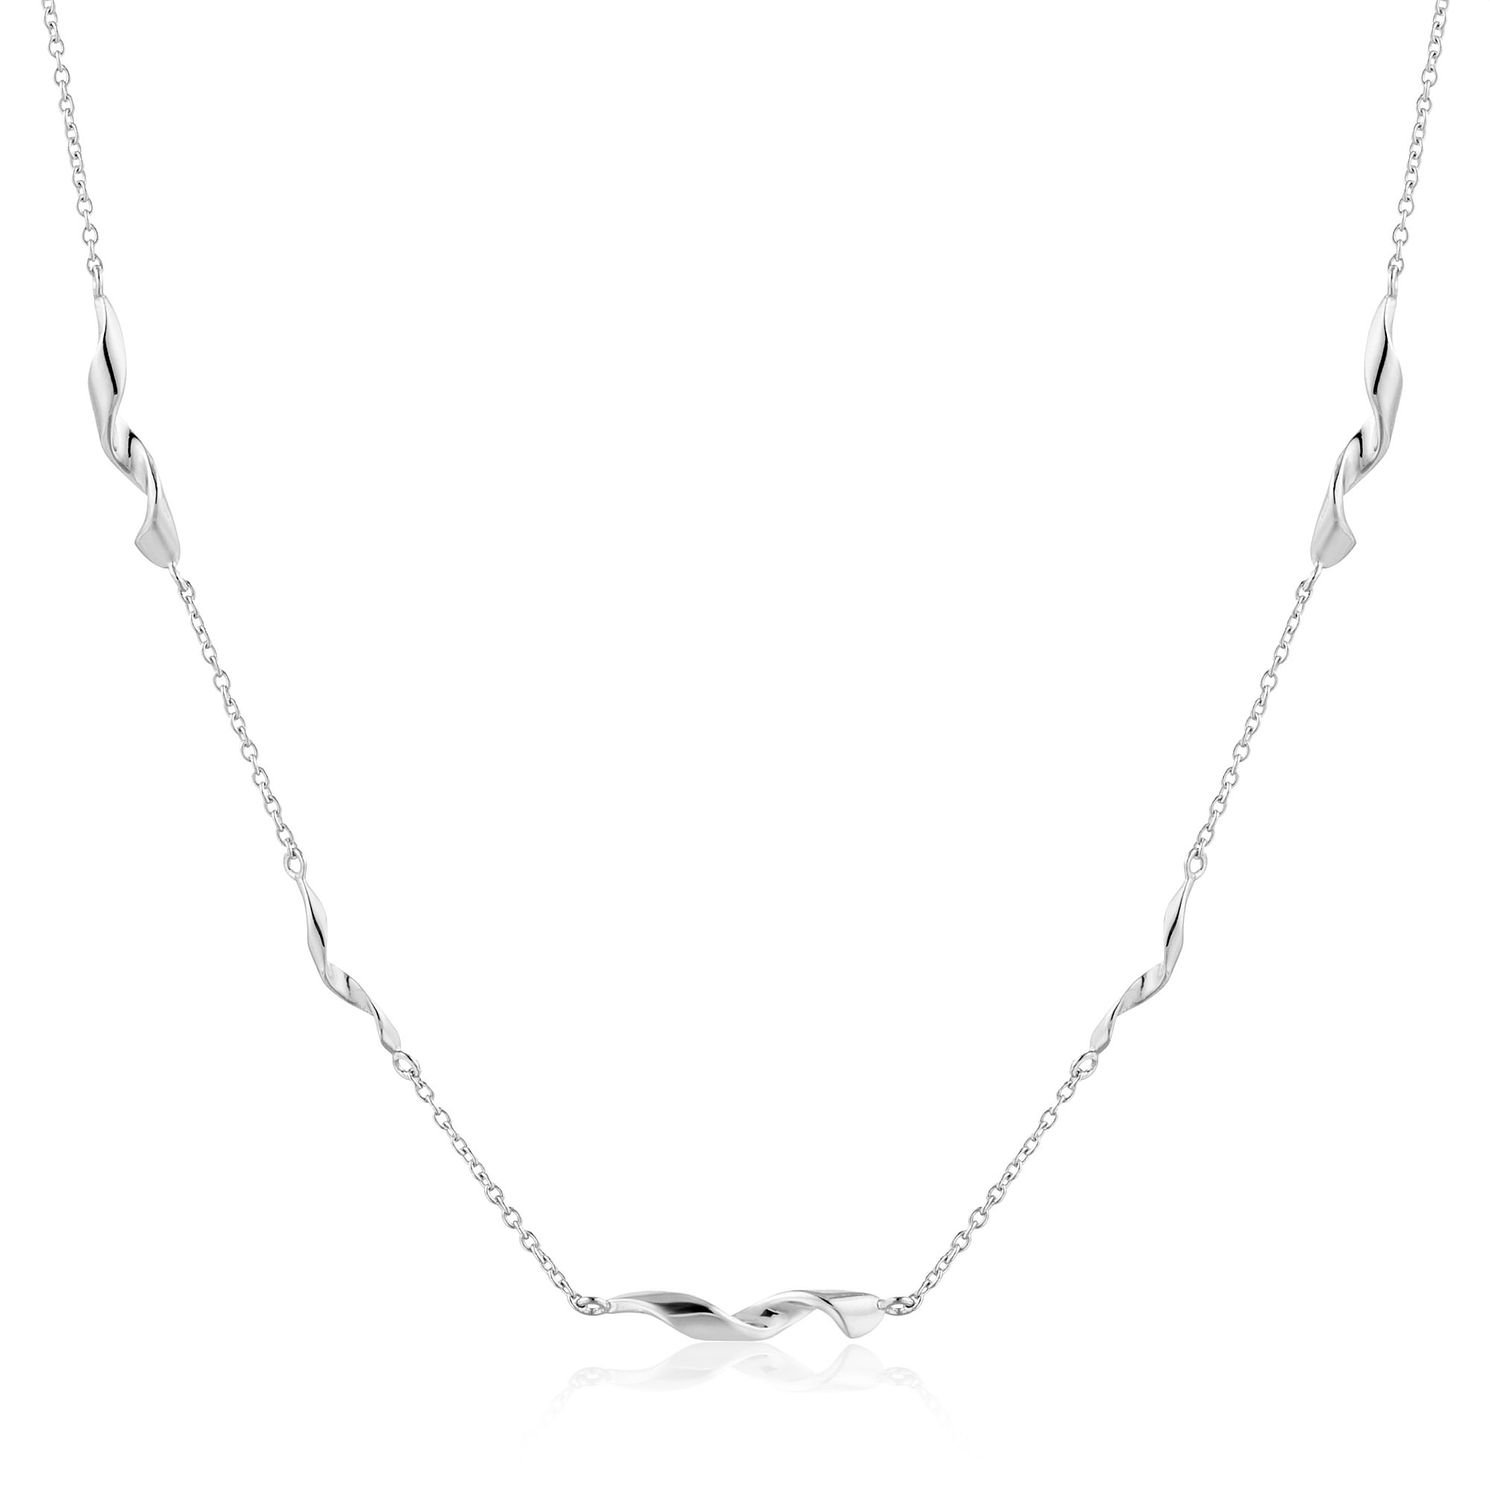 Ania Haie Sterling Silver Helix Necklace - Product number 6007023